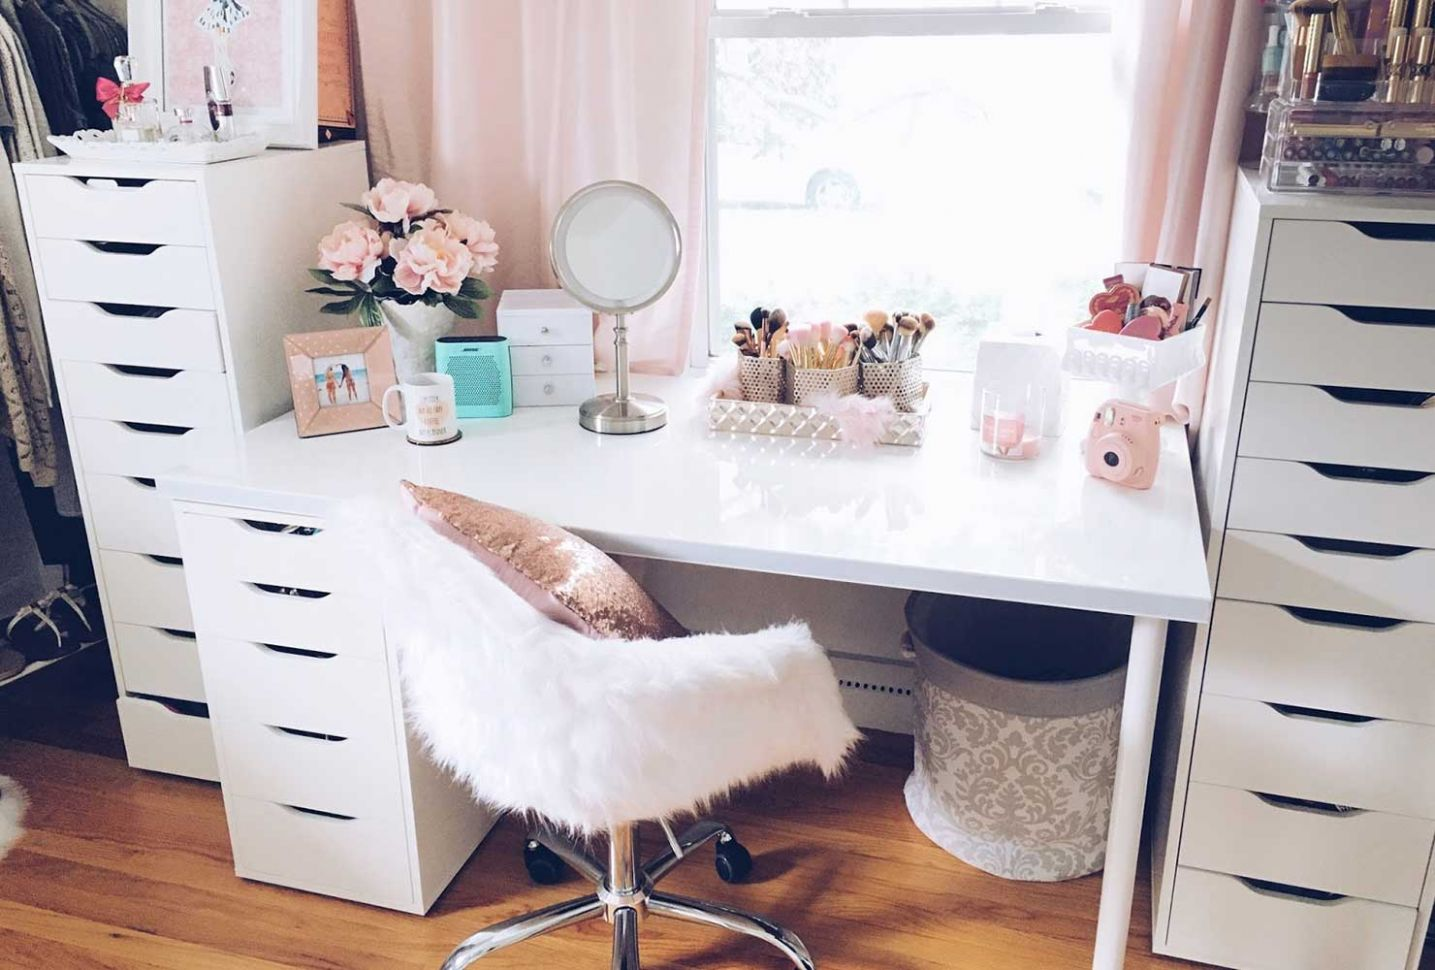 11 Makeup Room Ideas To Brighten Your Morning Routine | Shutterfly - makeup room decor